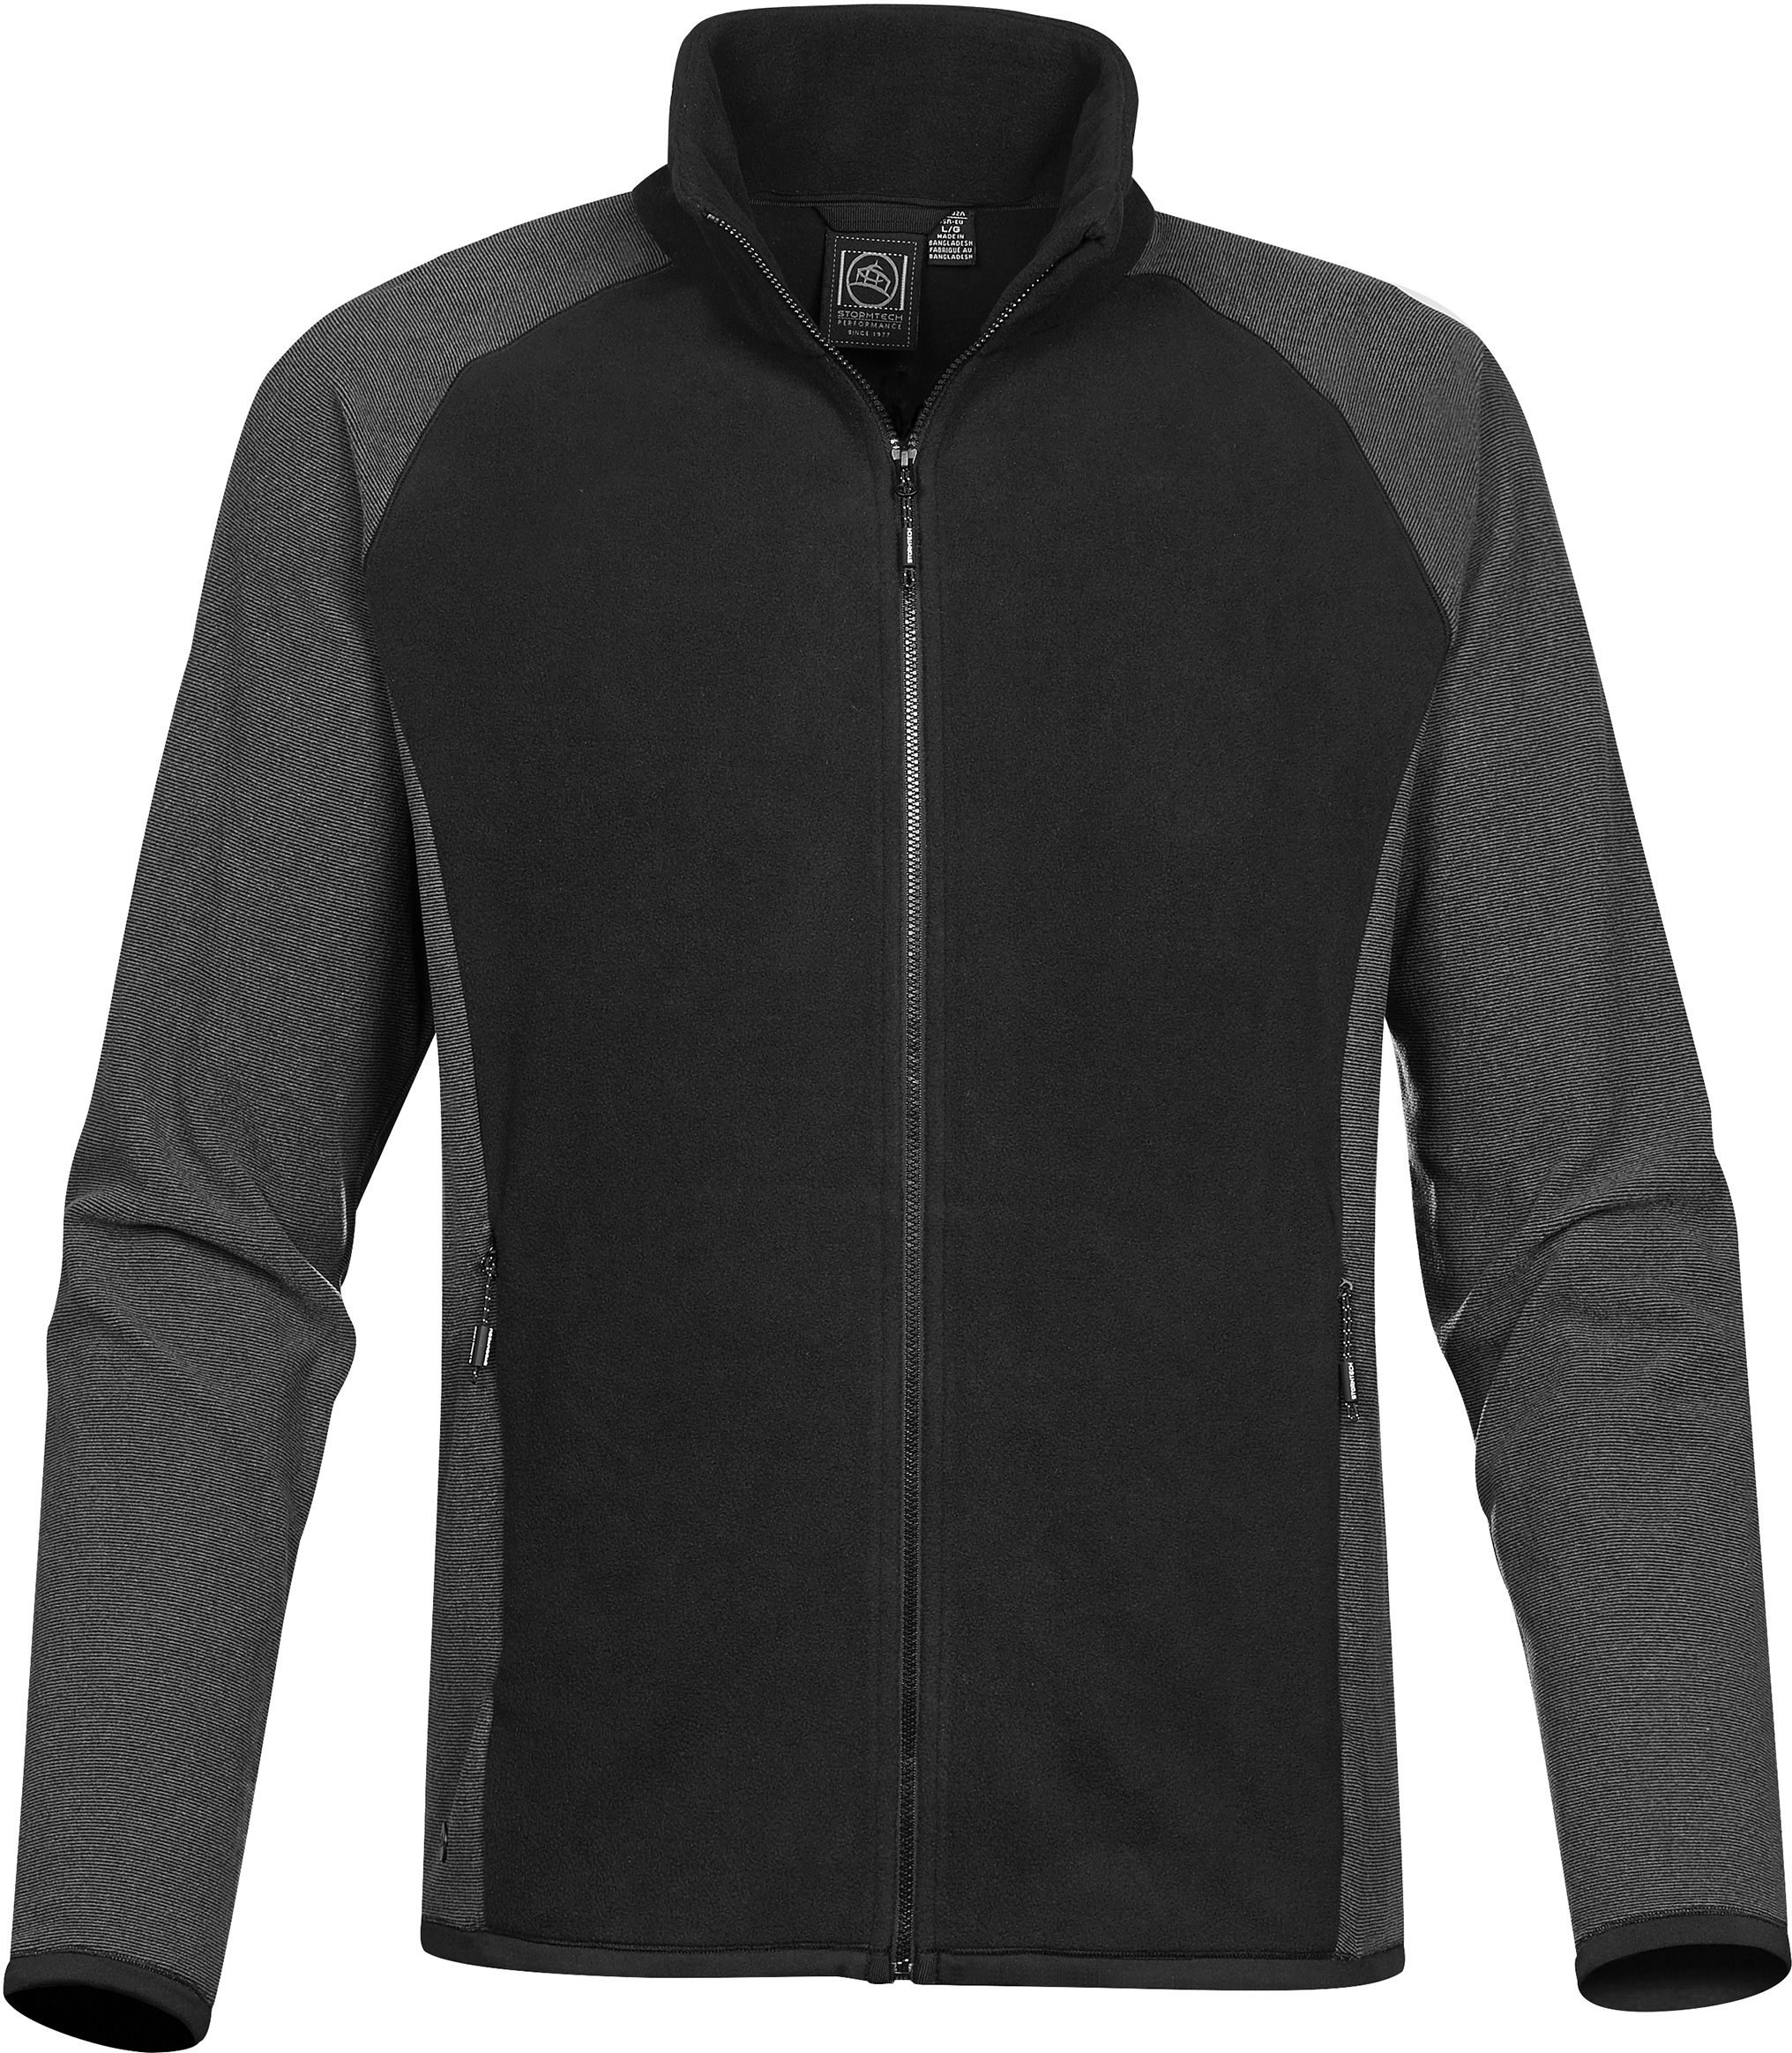 Stormtech MX-2 - Men's Impact Microfleece Jacket